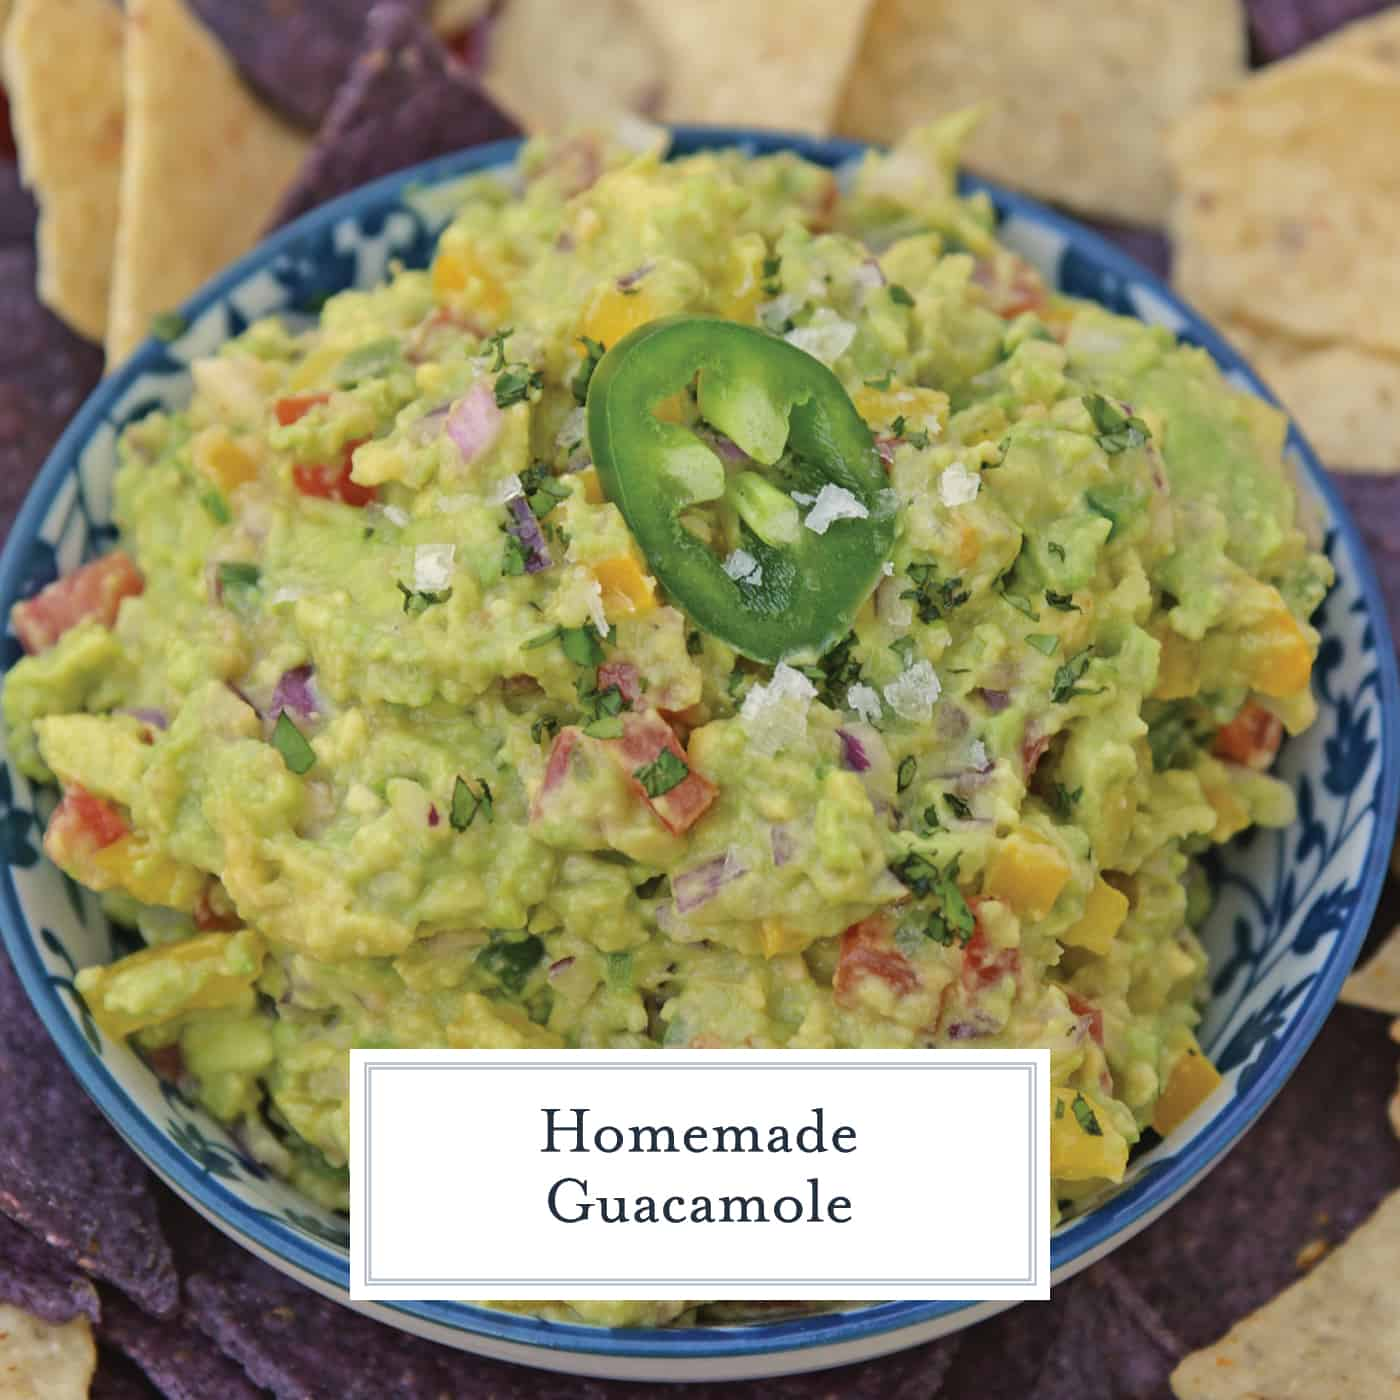 This Homemade Guacamole is one of the Best Guacamole Recipe you'll find! It's an easy guacamole recipe that is perfect for pairing with chips, fish, chicken, beef, salad or any food that needs a little pick-me-up! #bestguacamolerecipe #easyguacamolerecipe #homemadeguacamole www.savoryexperiments.com